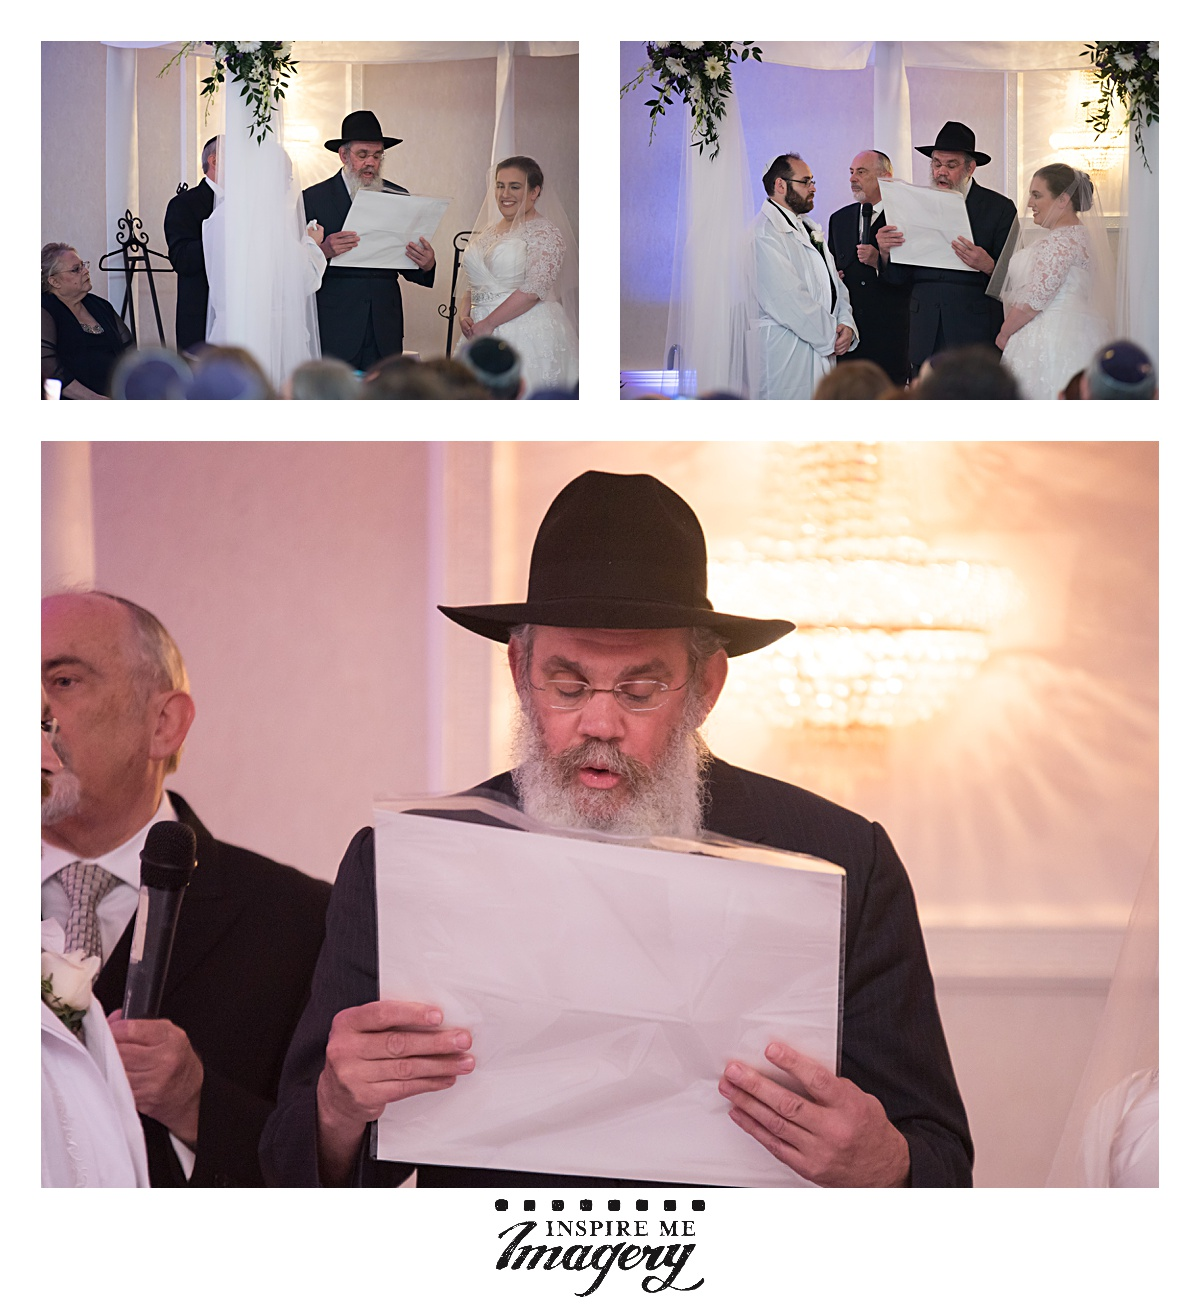 Rabbi Posner, of Chabad Boston, reads the ketubah during the wedding ceremony.